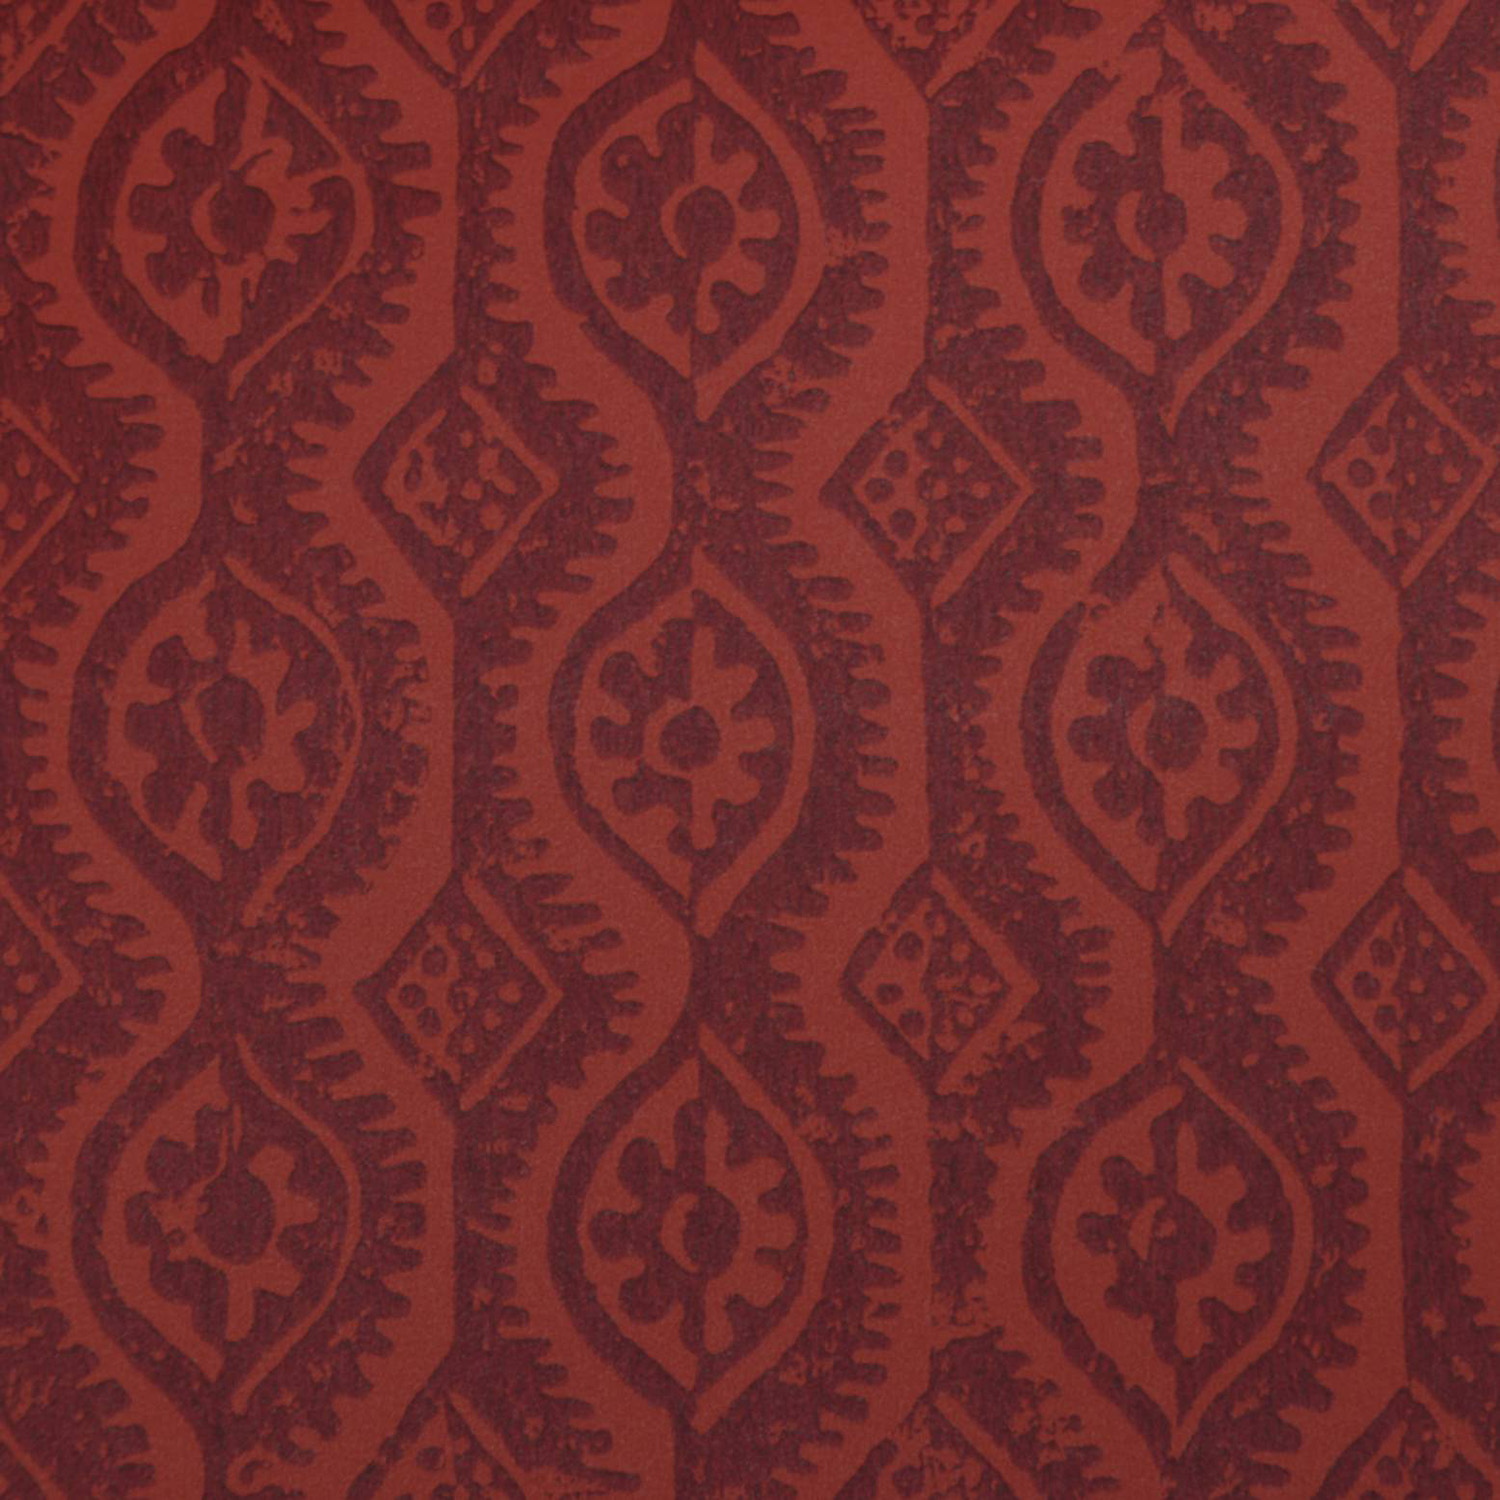 <p><strong>SMALL DAMASK</strong>red 880-04<a href=/the-peggy-angus-collection/small-damask-red-880-04>More →</a></p>